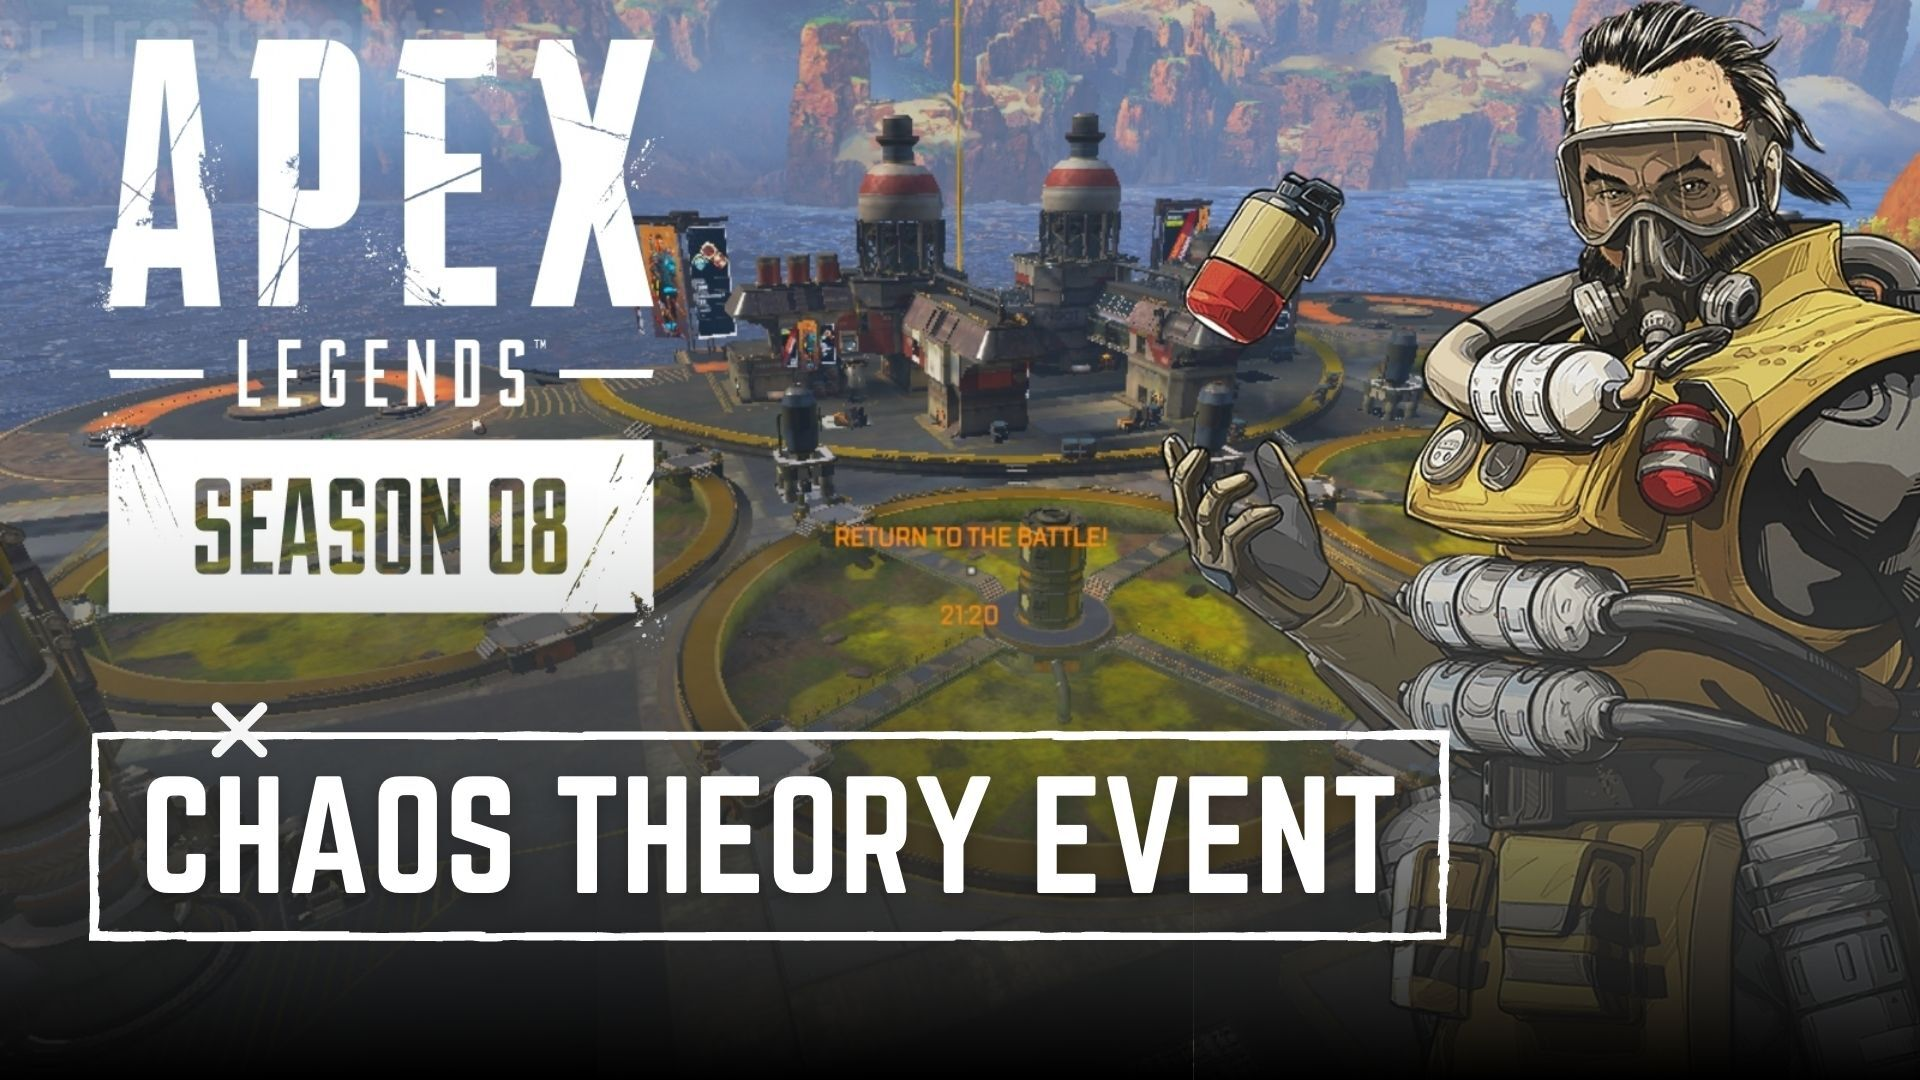 Chaost Theory event in apex legends